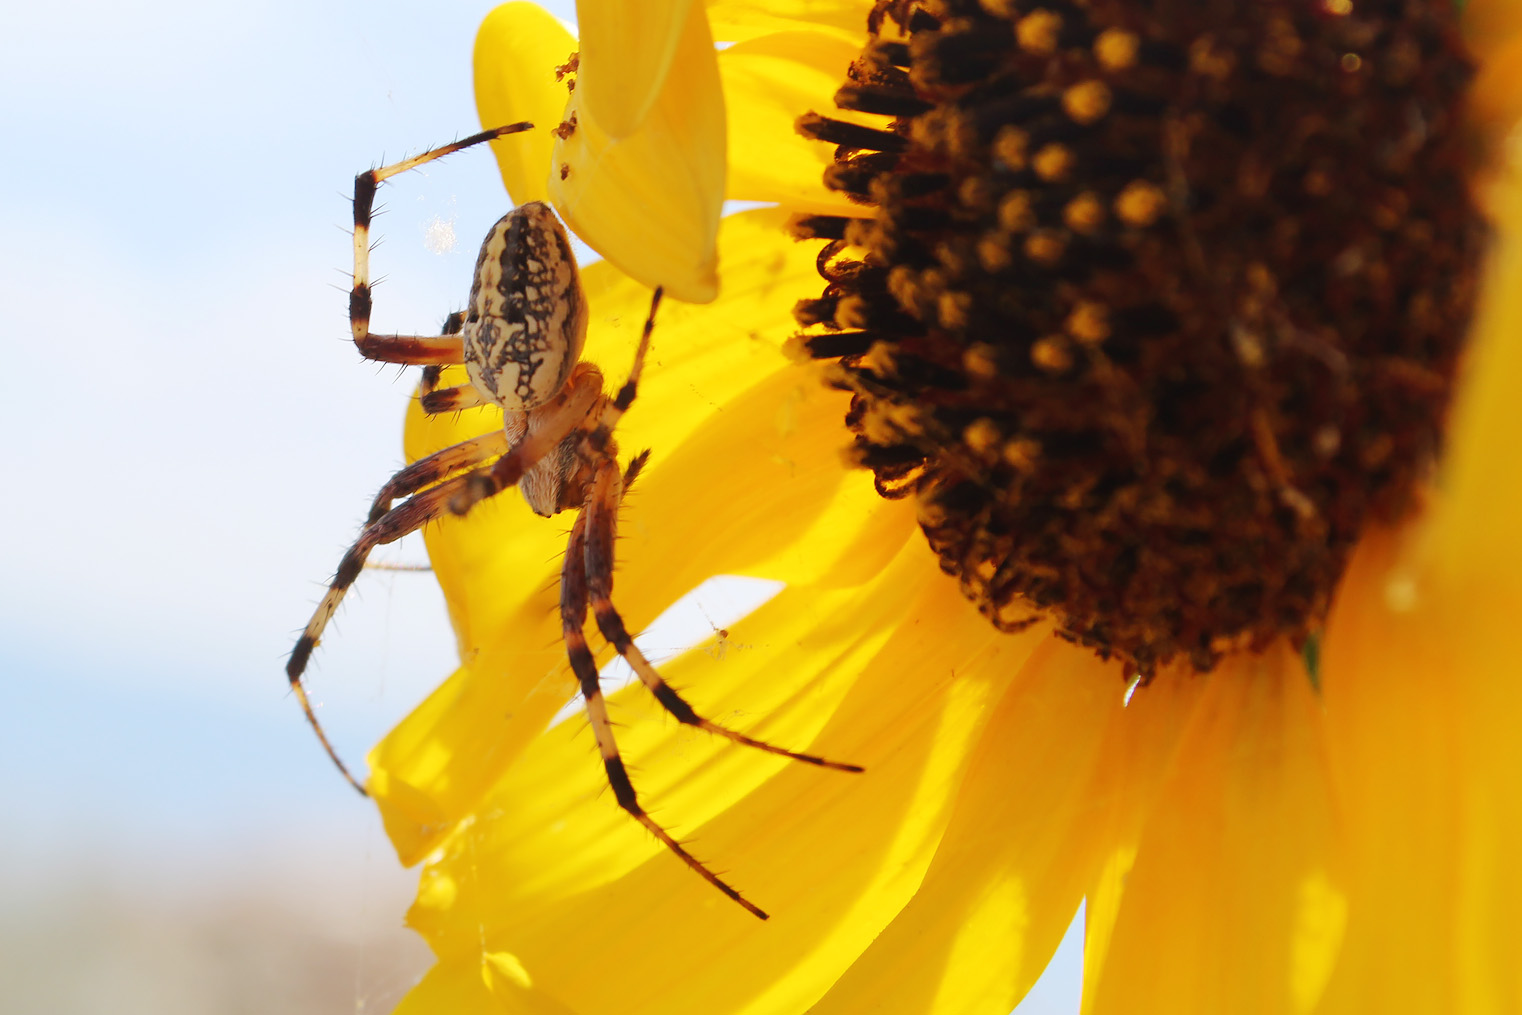 An orb weaver spider on a flower.